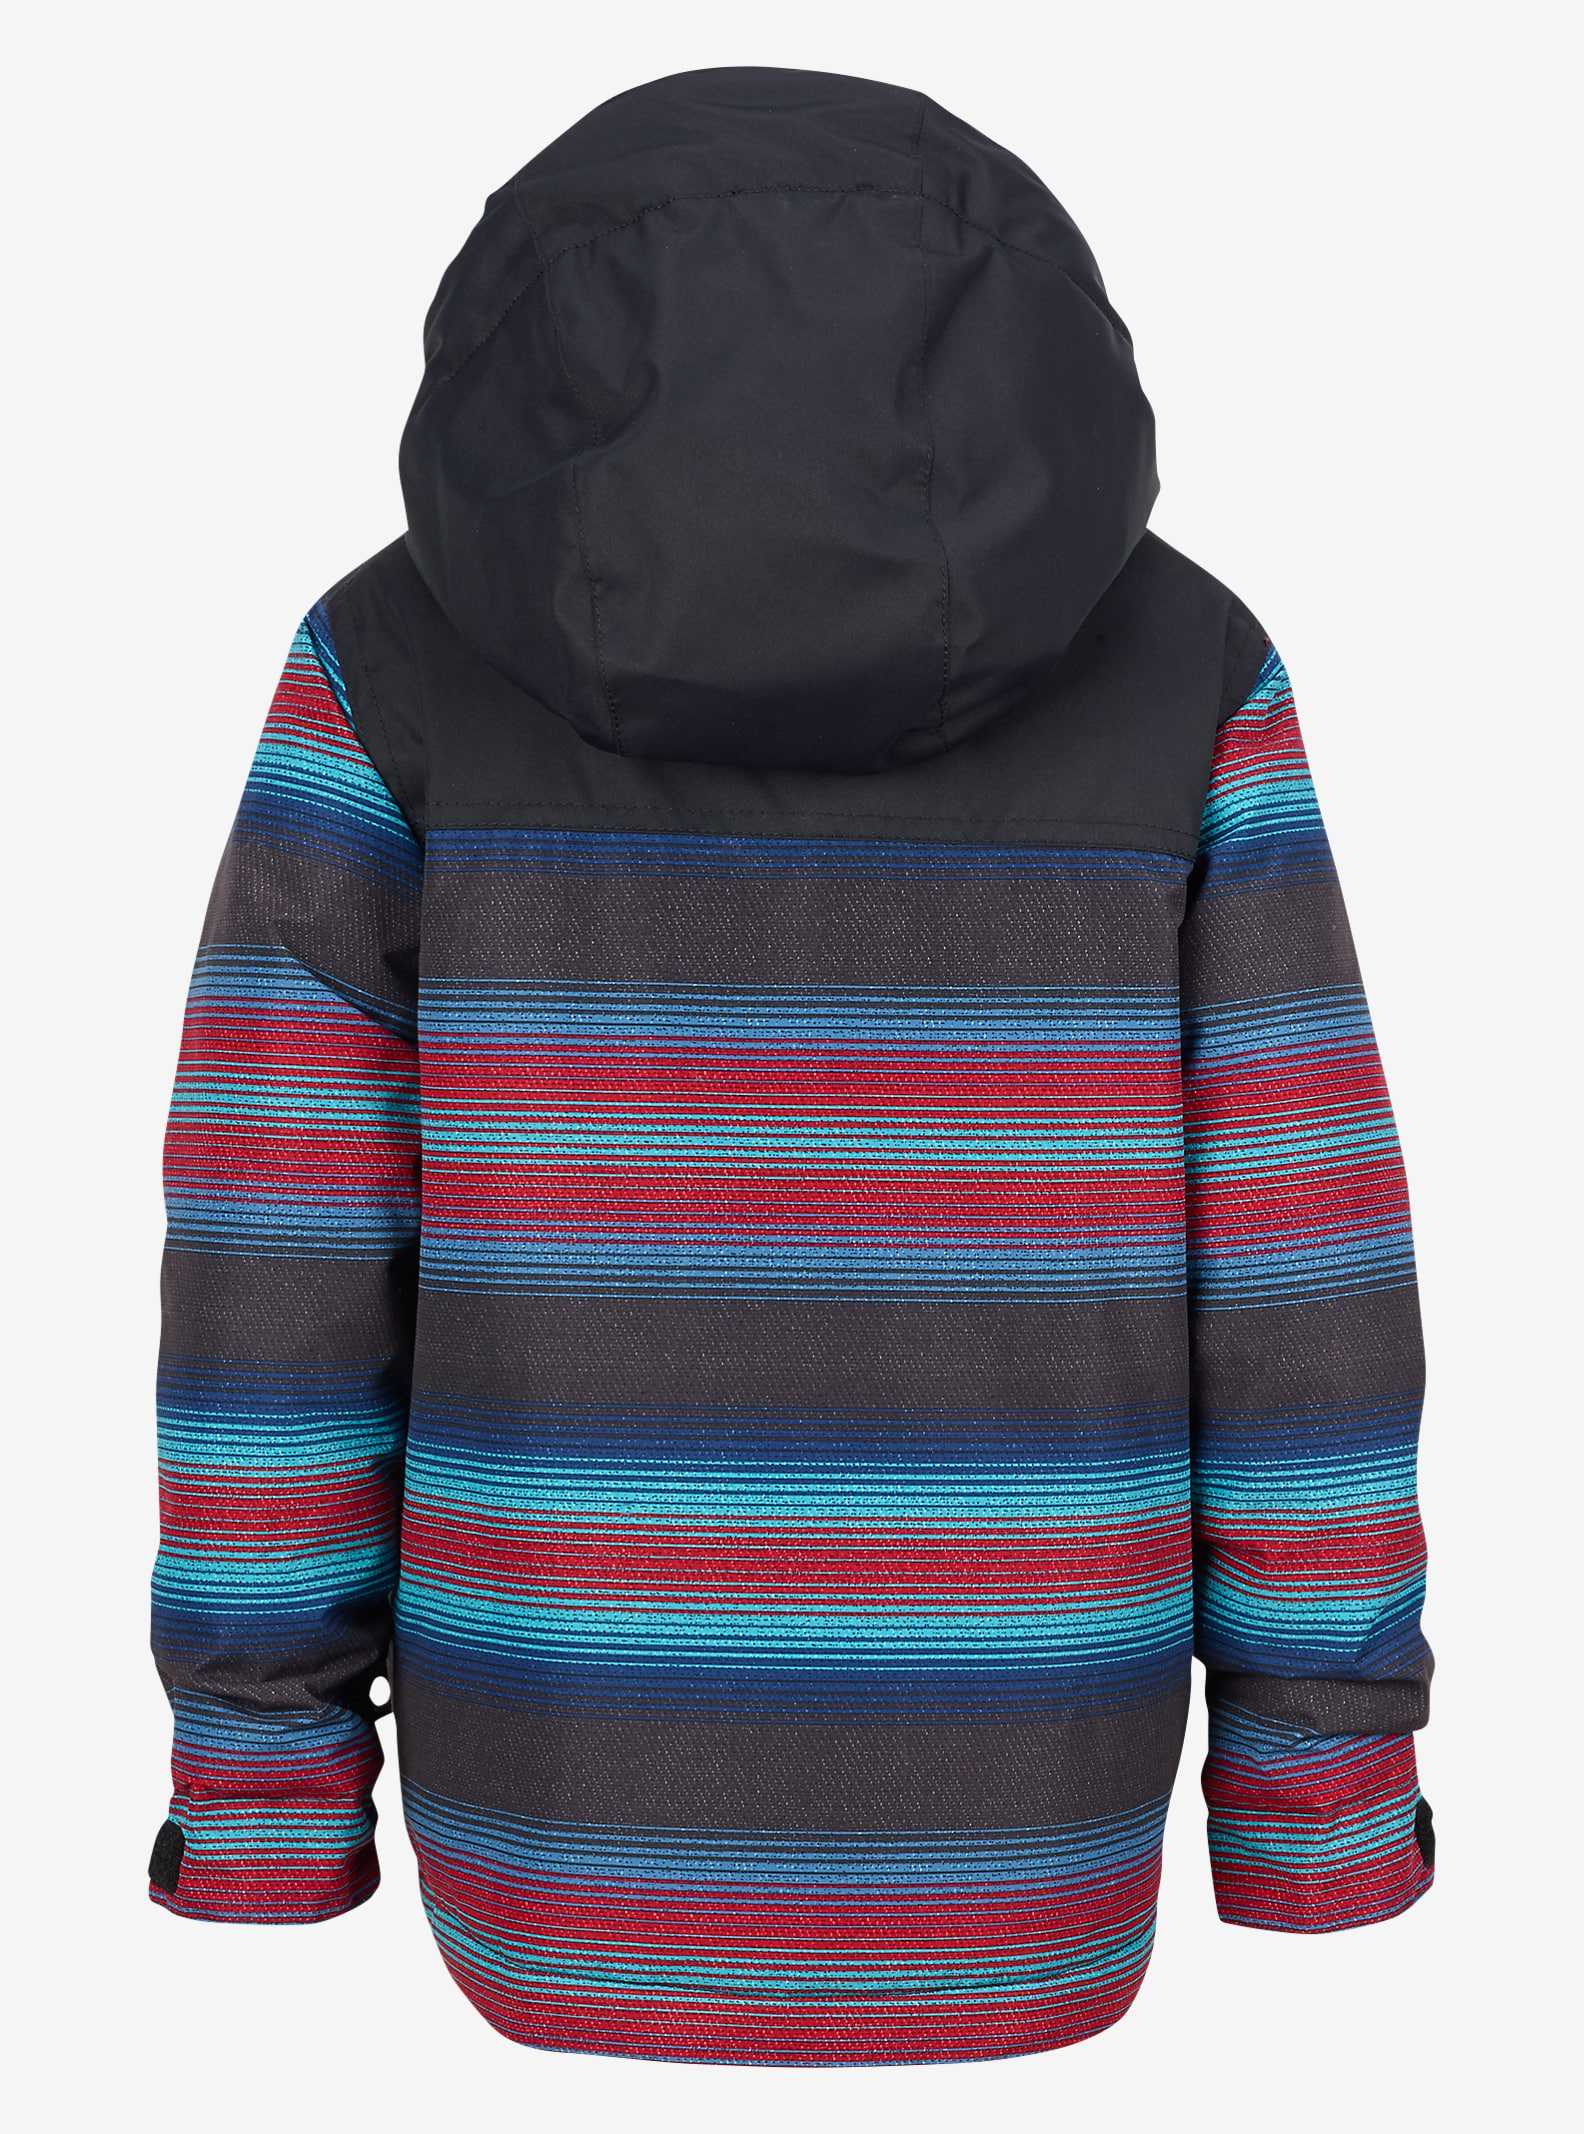 Burton - Manteau Minishred Amped garçon affichage en Seaside Stripe / True Black